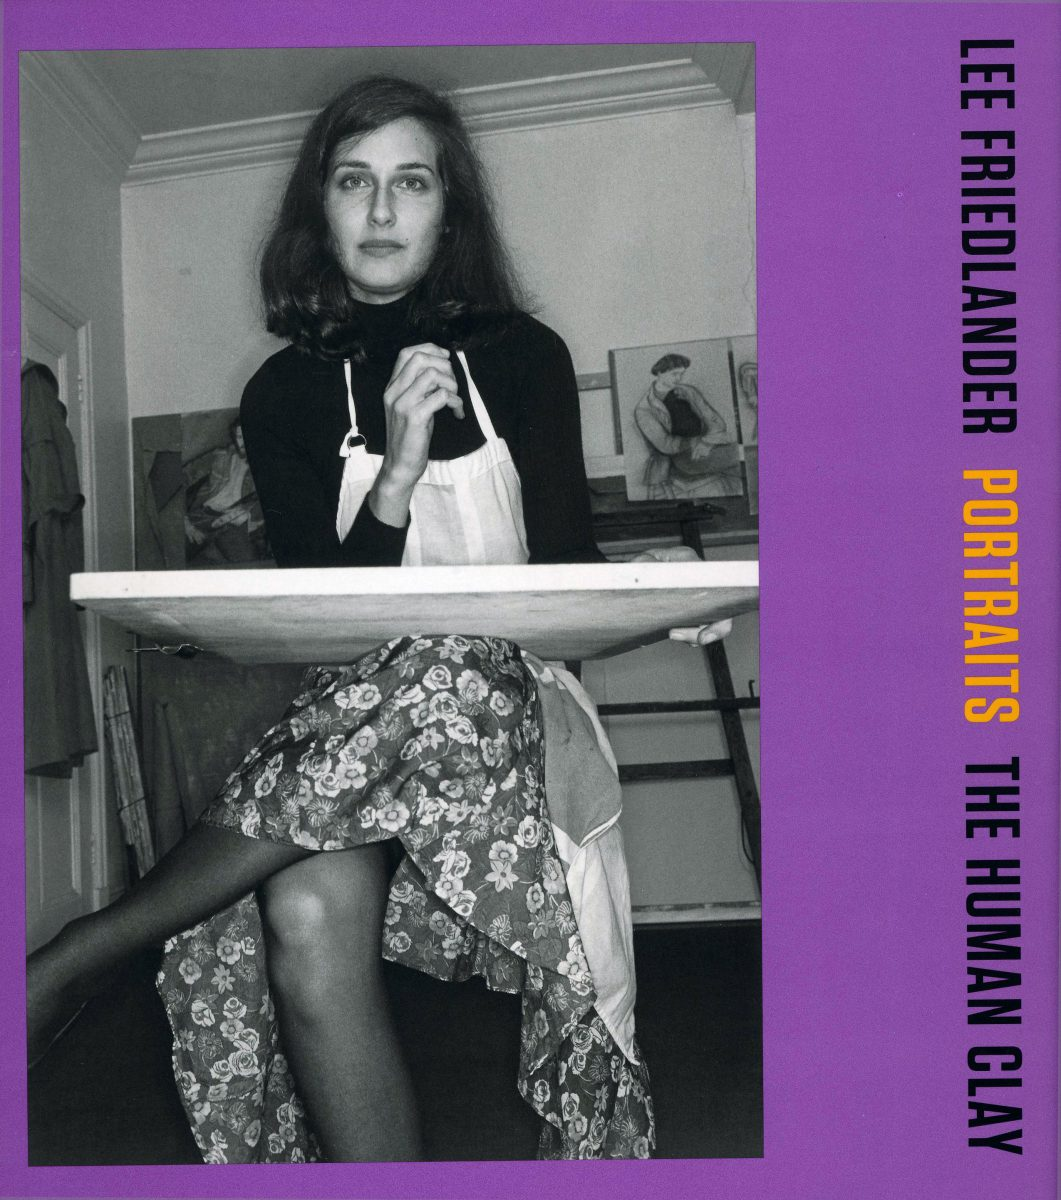 Portraits, The Human Clay by Lee Friedlander